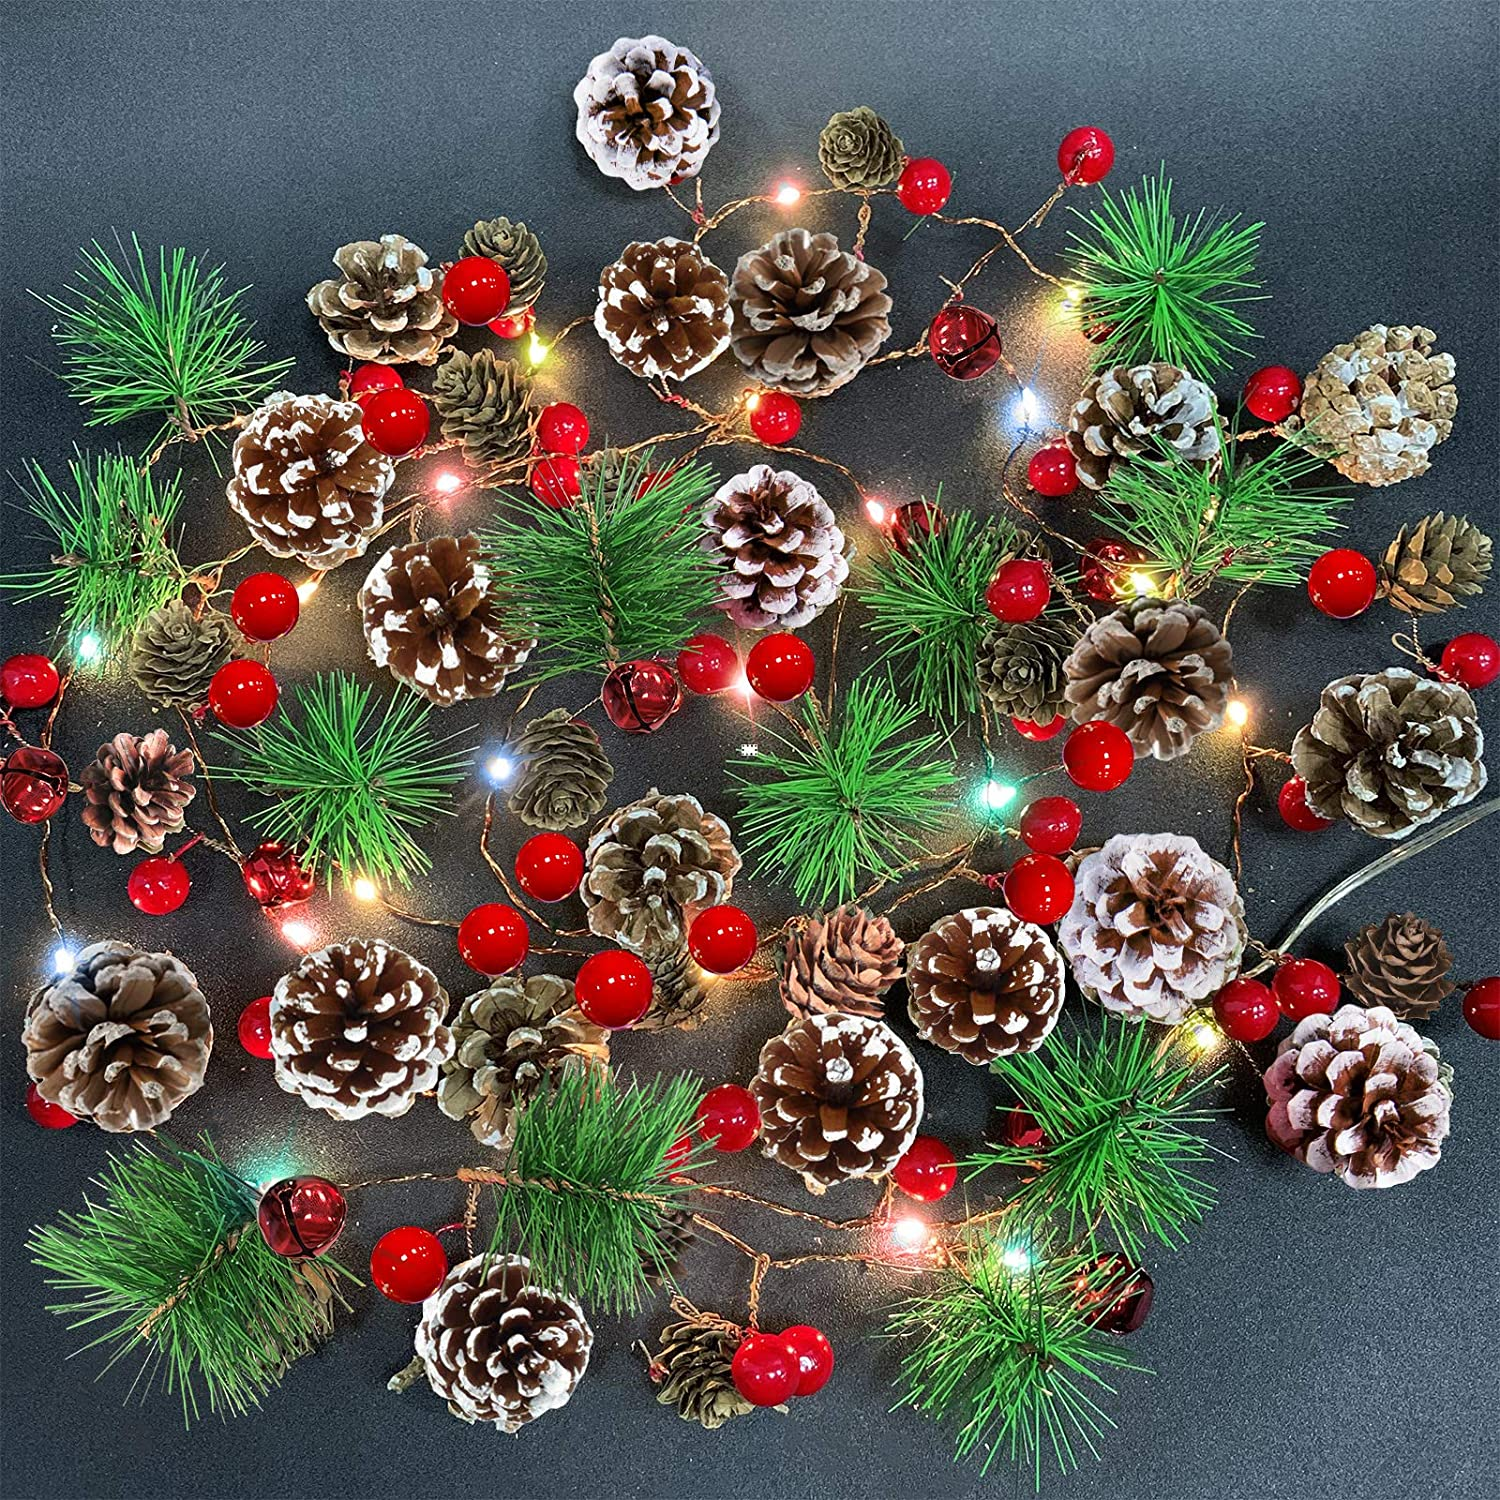 Camlinbo Garland with Lights Christmas Lights Battery Operated, 10FT 30LED Christmas Garland with Lights Pre-lit Garland Mantle Garland, Christmas Decoration Indoor Outdoor Xmas Home Decor(Colorful)